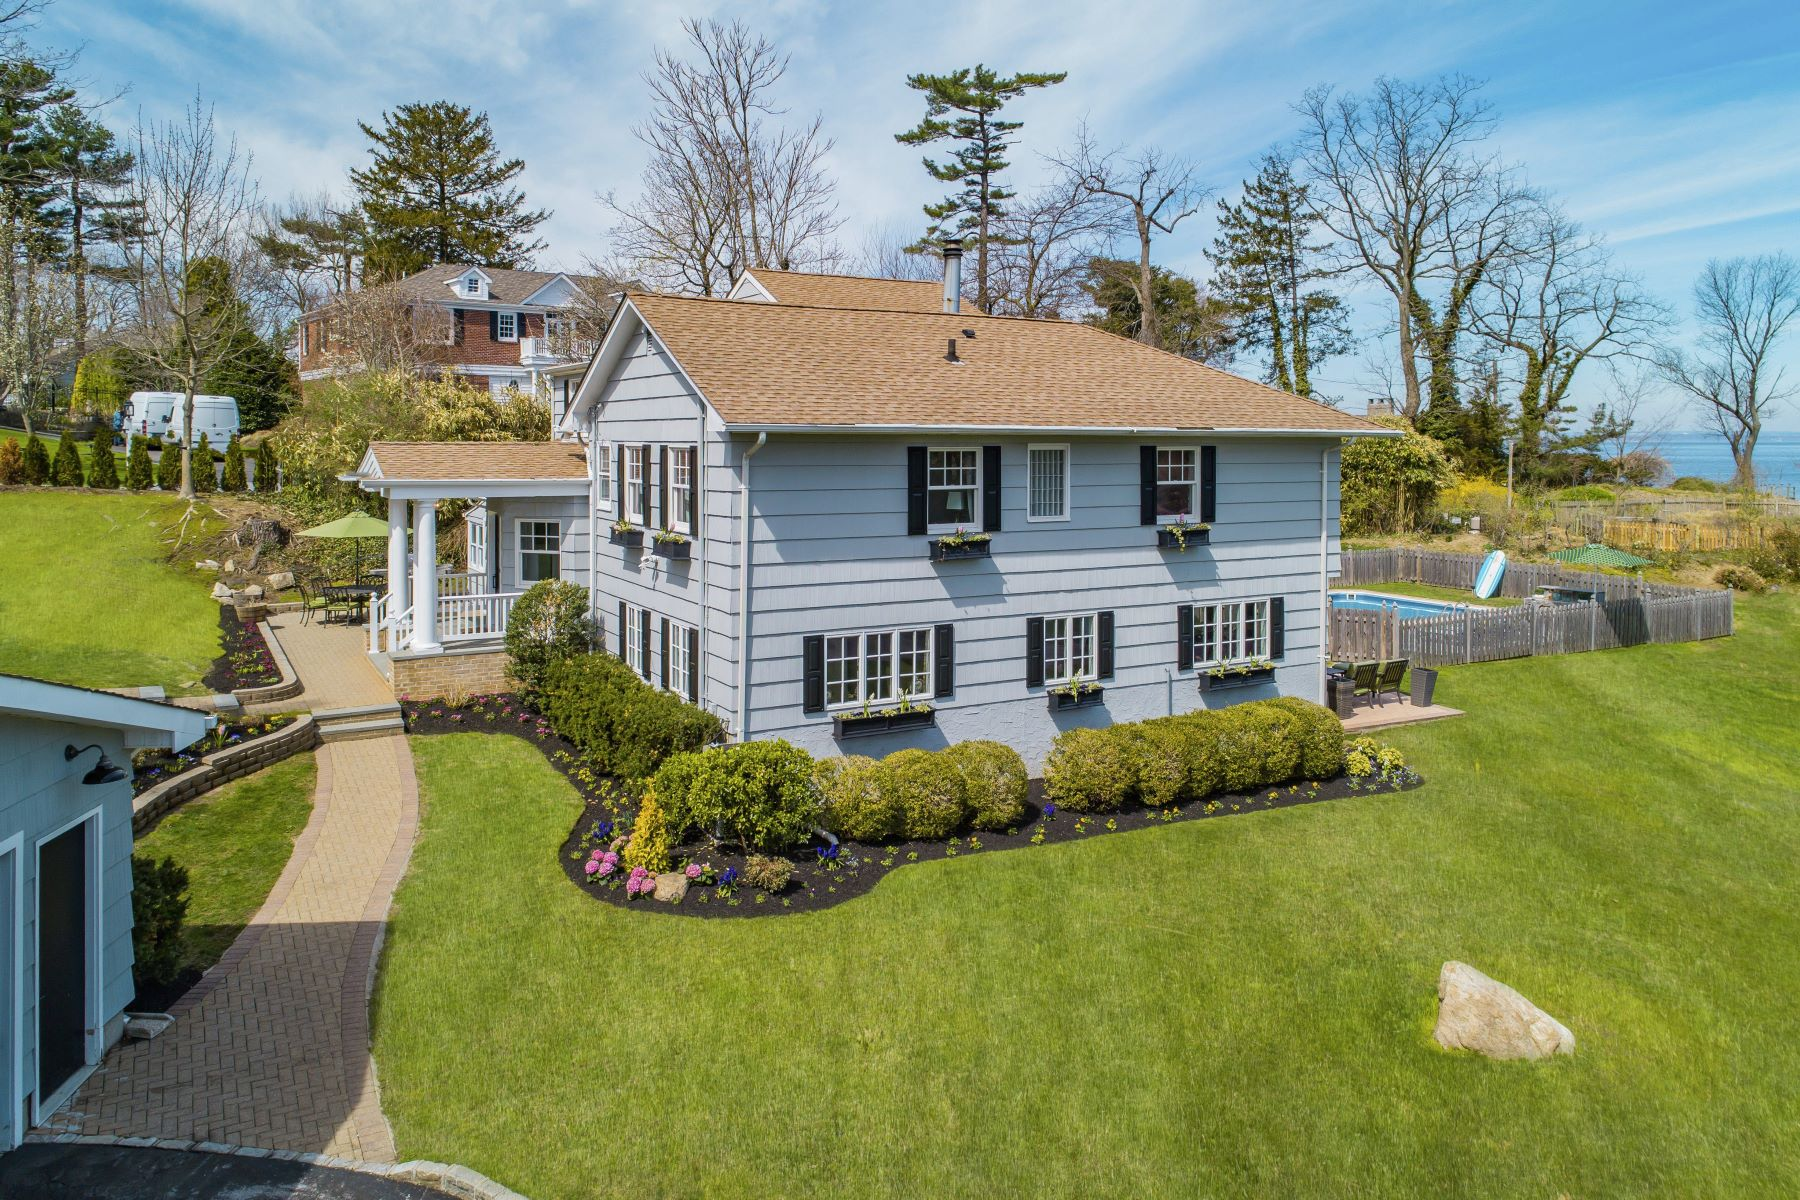 Single Family Homes for Active at Manhasset 4 Water Ln Manhasset, New York 11030 United States